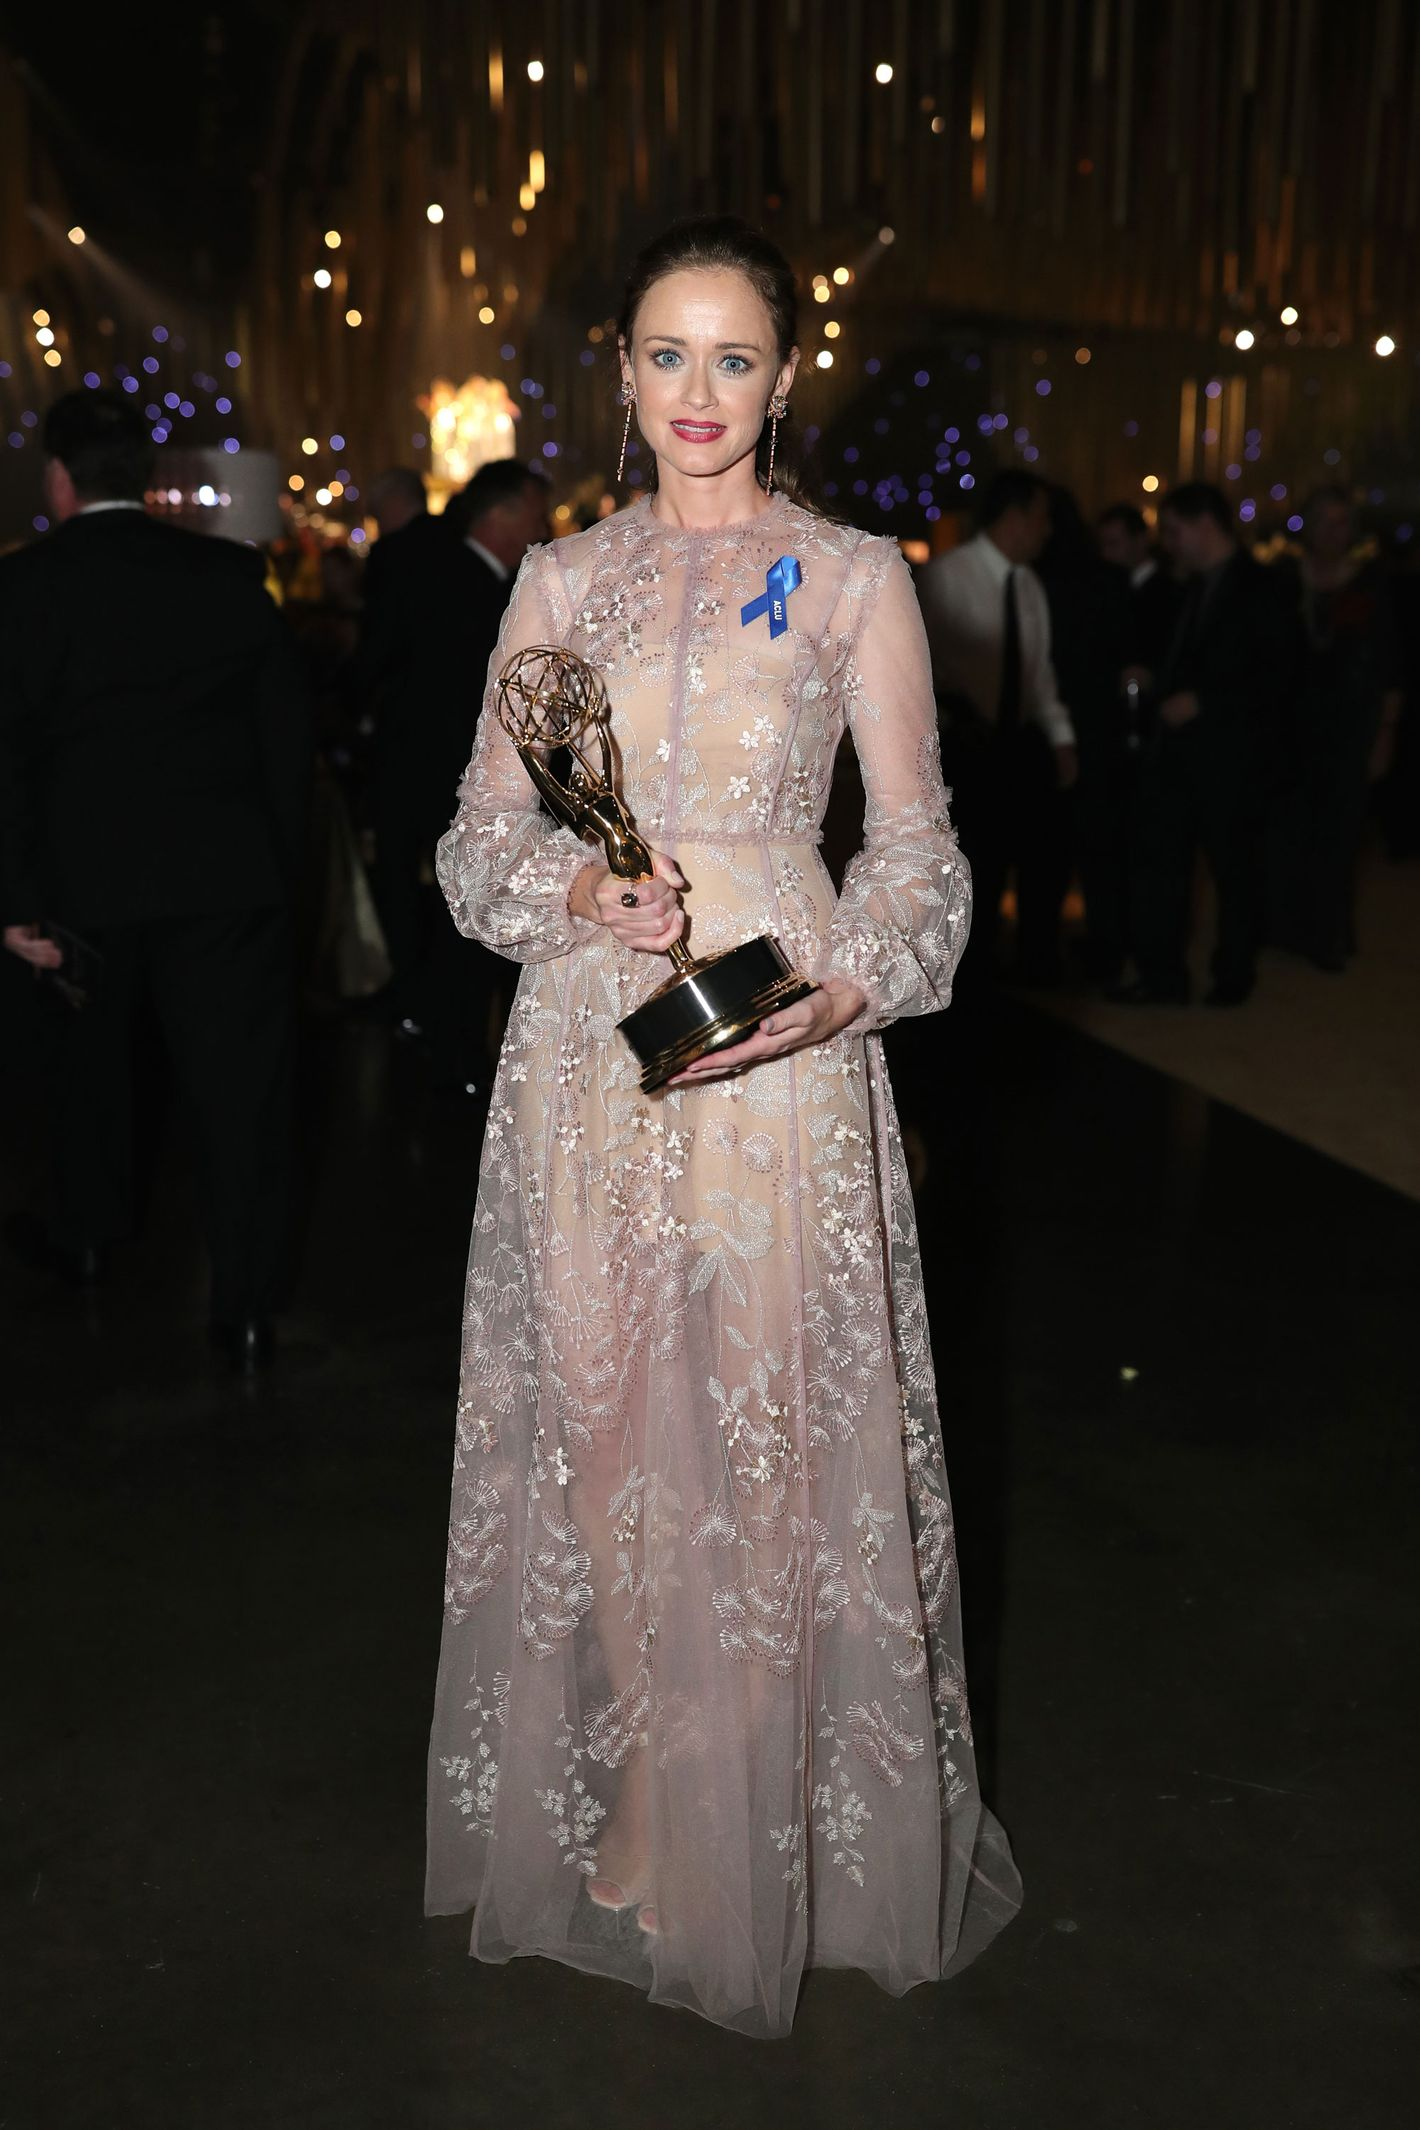 Alexis Bledel Wins Guest Actress Emmy for \'Handmaid\'s Tale\'